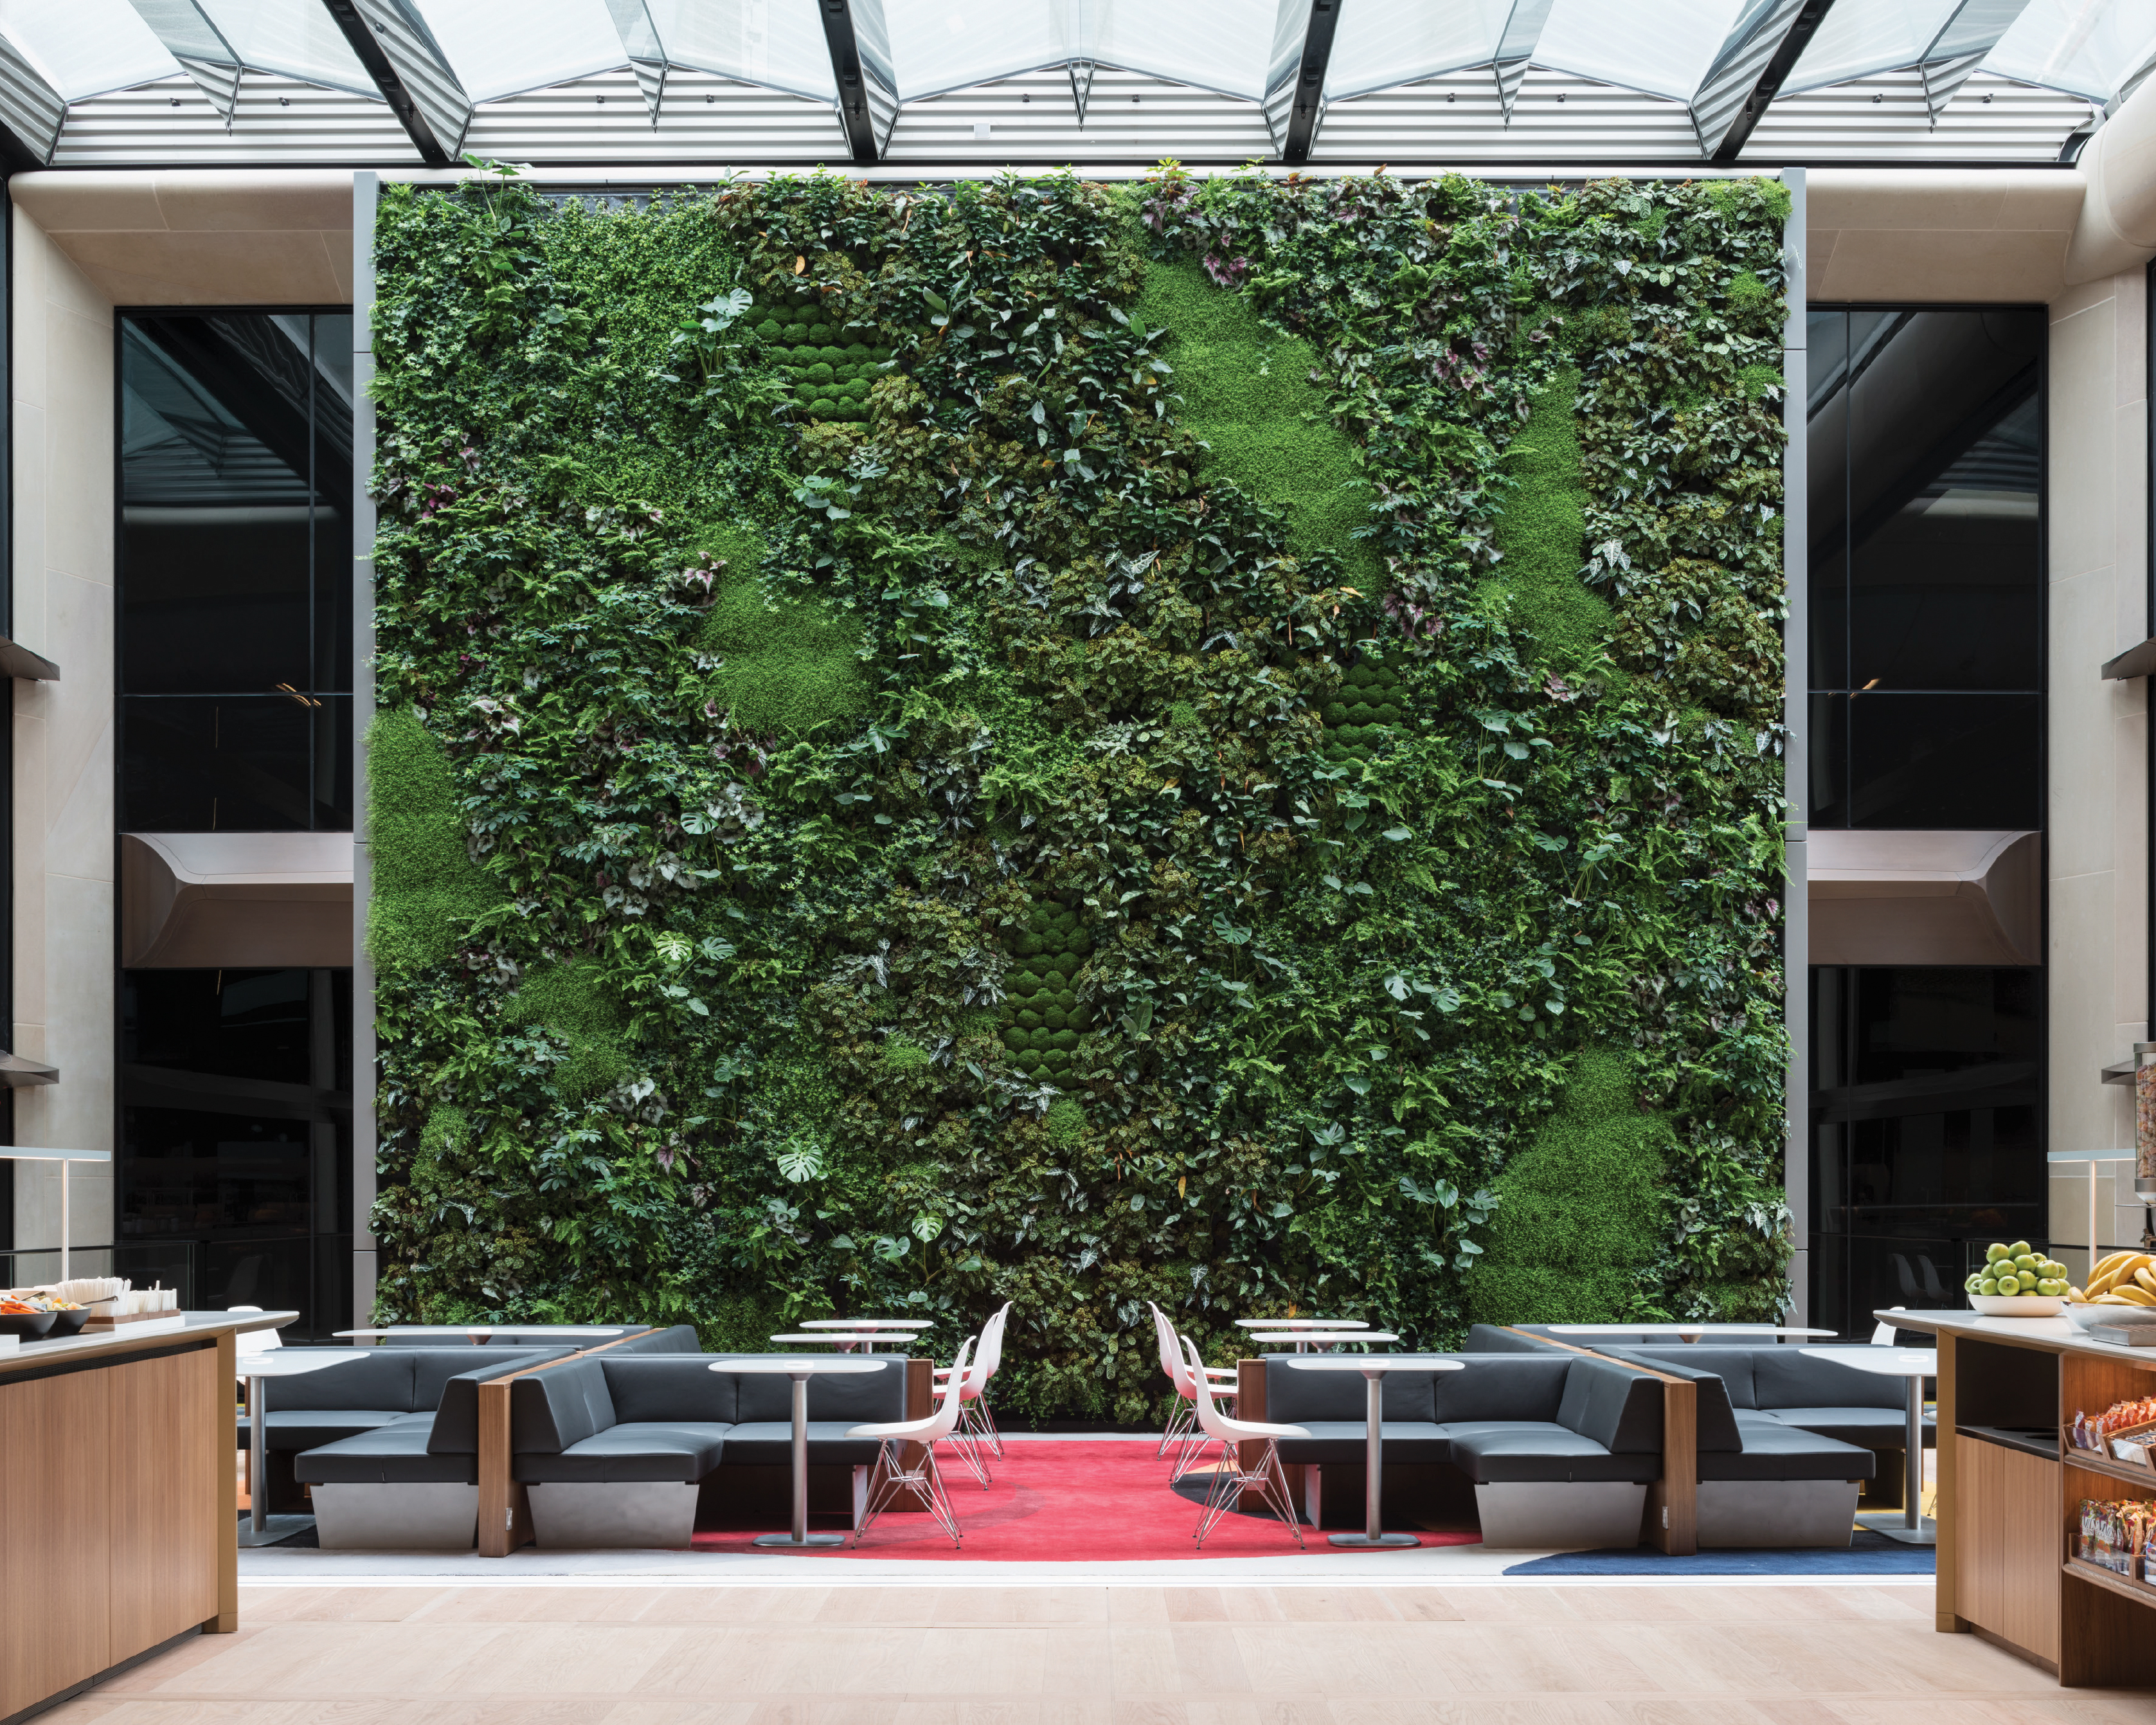 World\u0027s most sustainable office space opens in London - Curbed